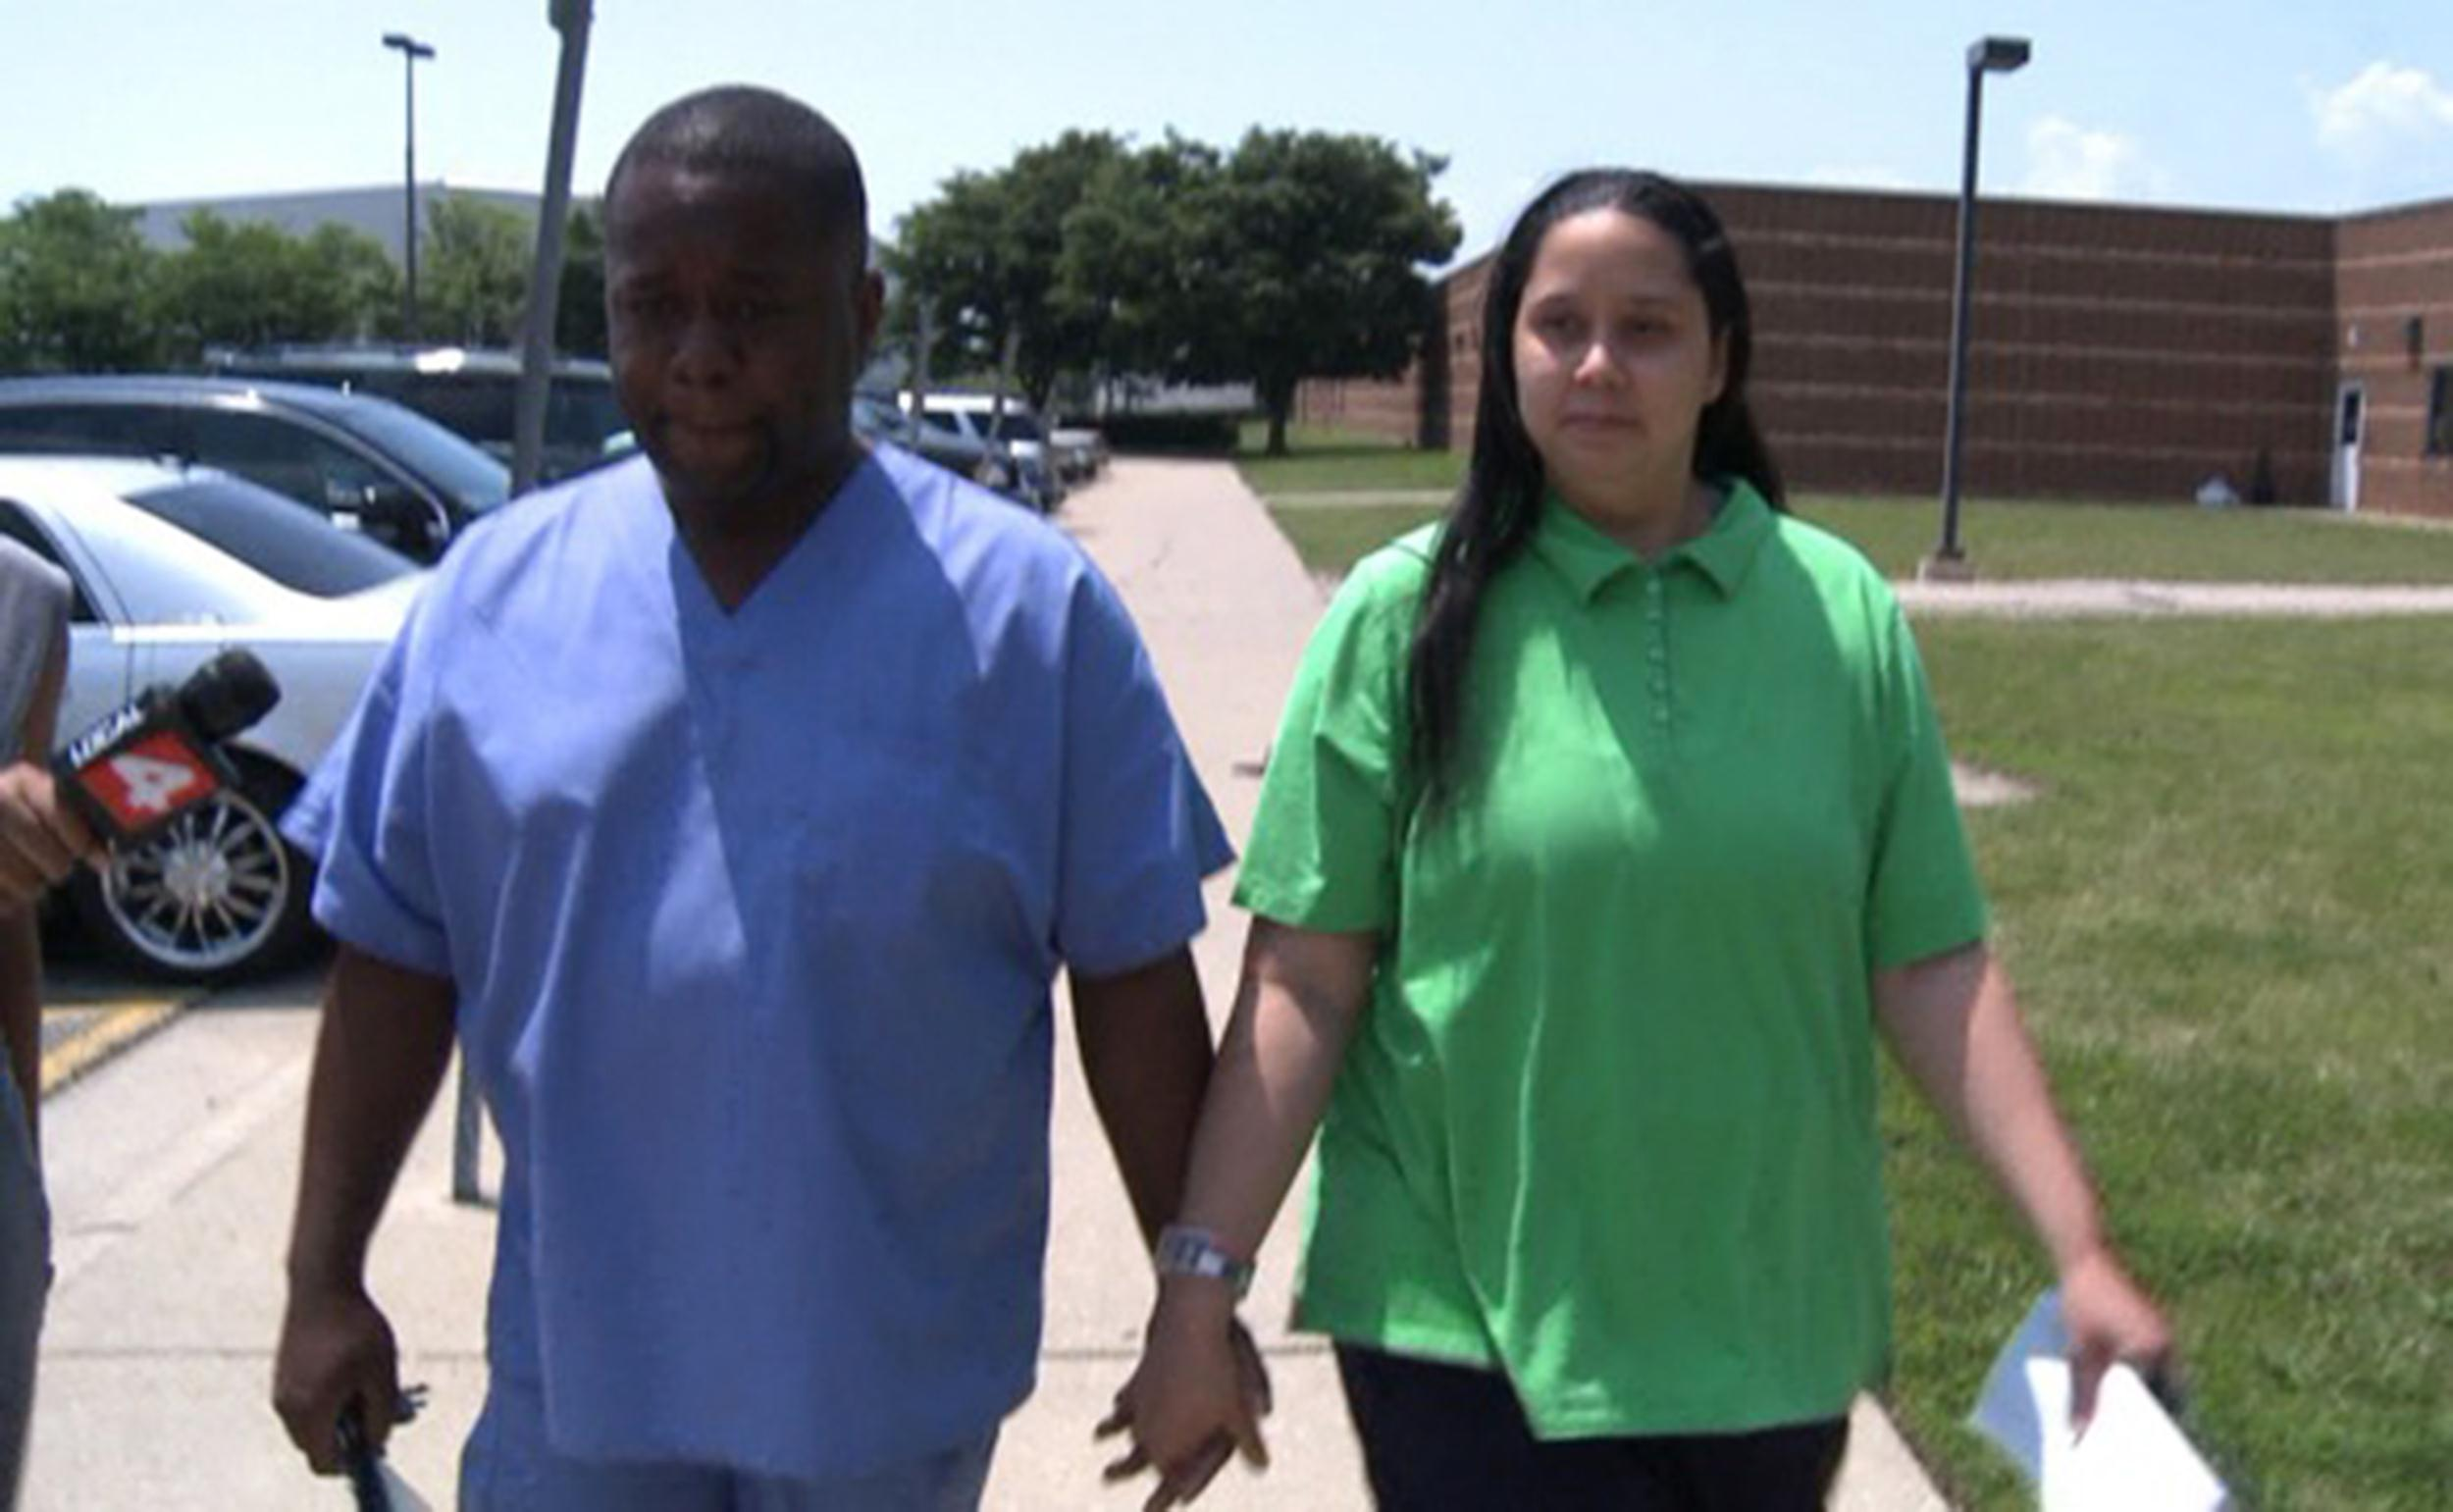 Image: Charles Bothuell and Monique Dillard-Bothuell leaving William Dickerson Detention Facility in Hamtramick